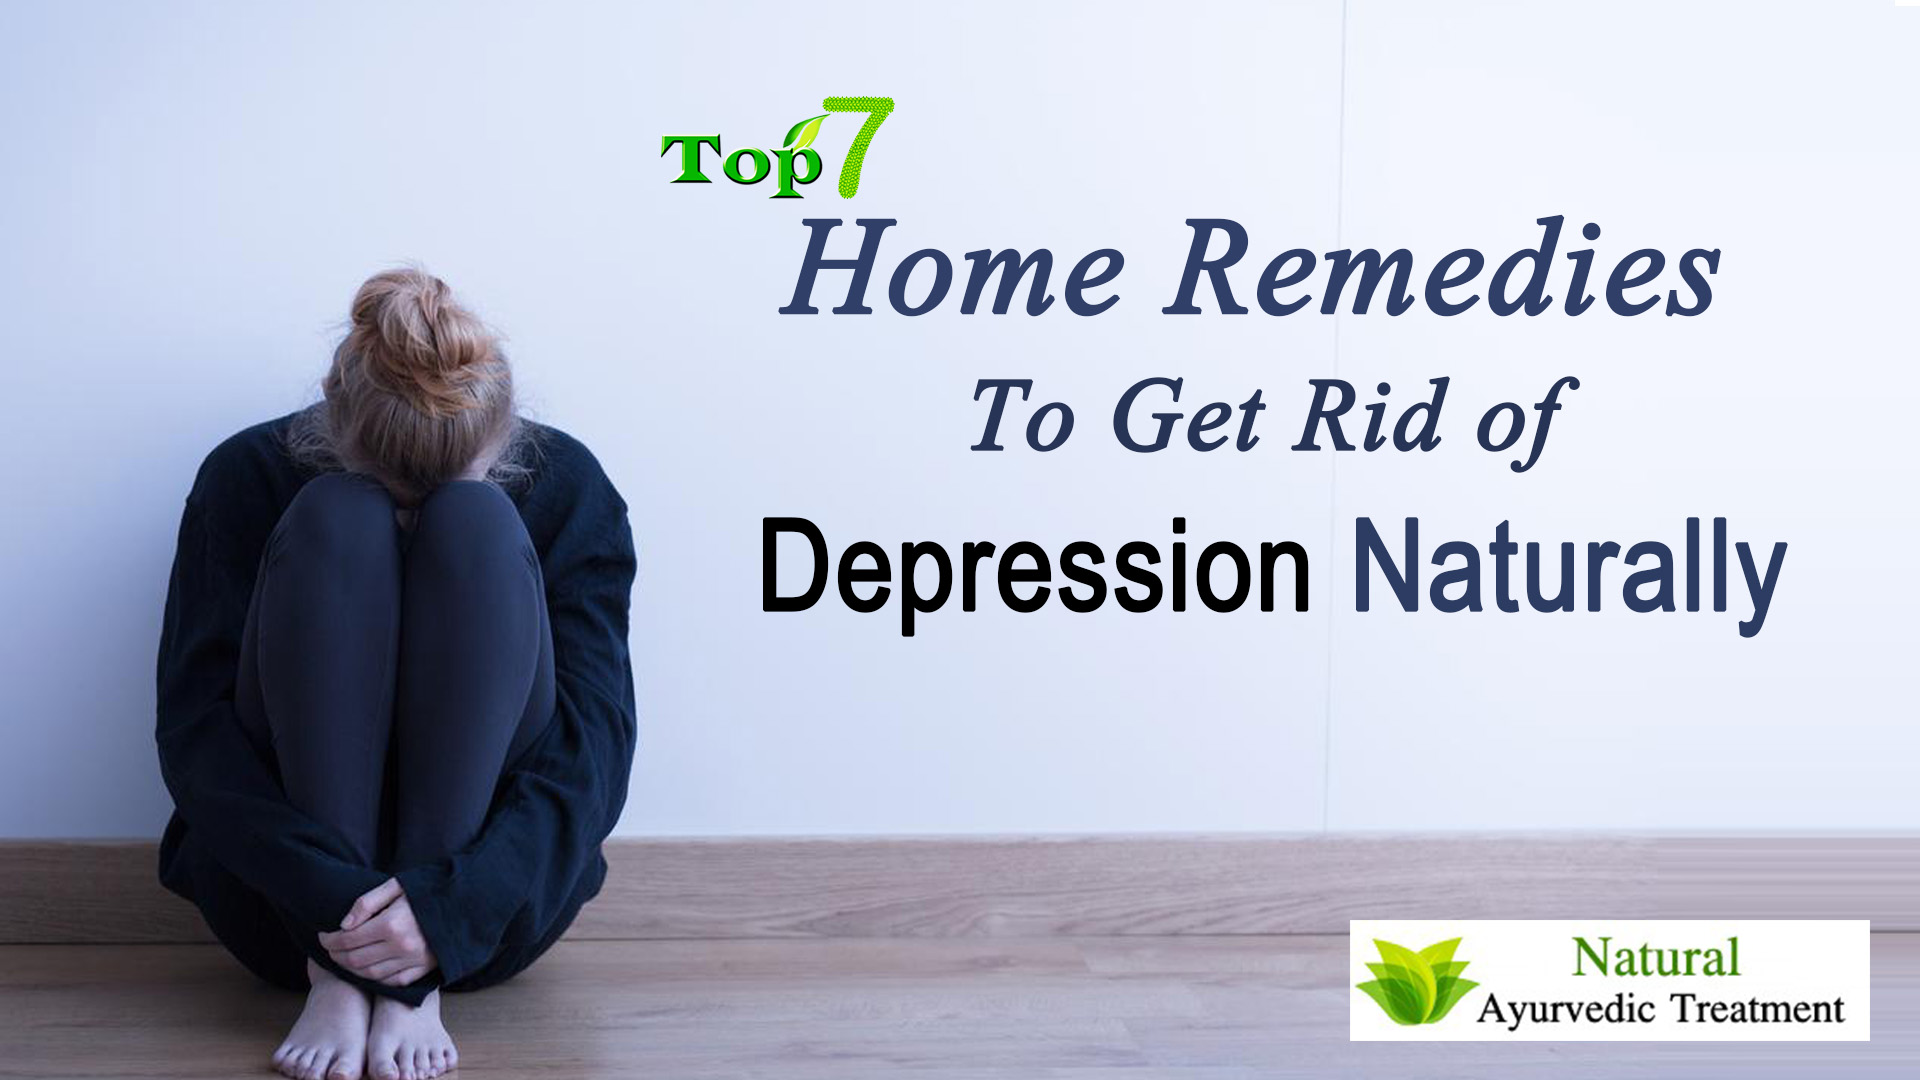 Top 7 Home Remedies To Get Rid of Depression Naturally